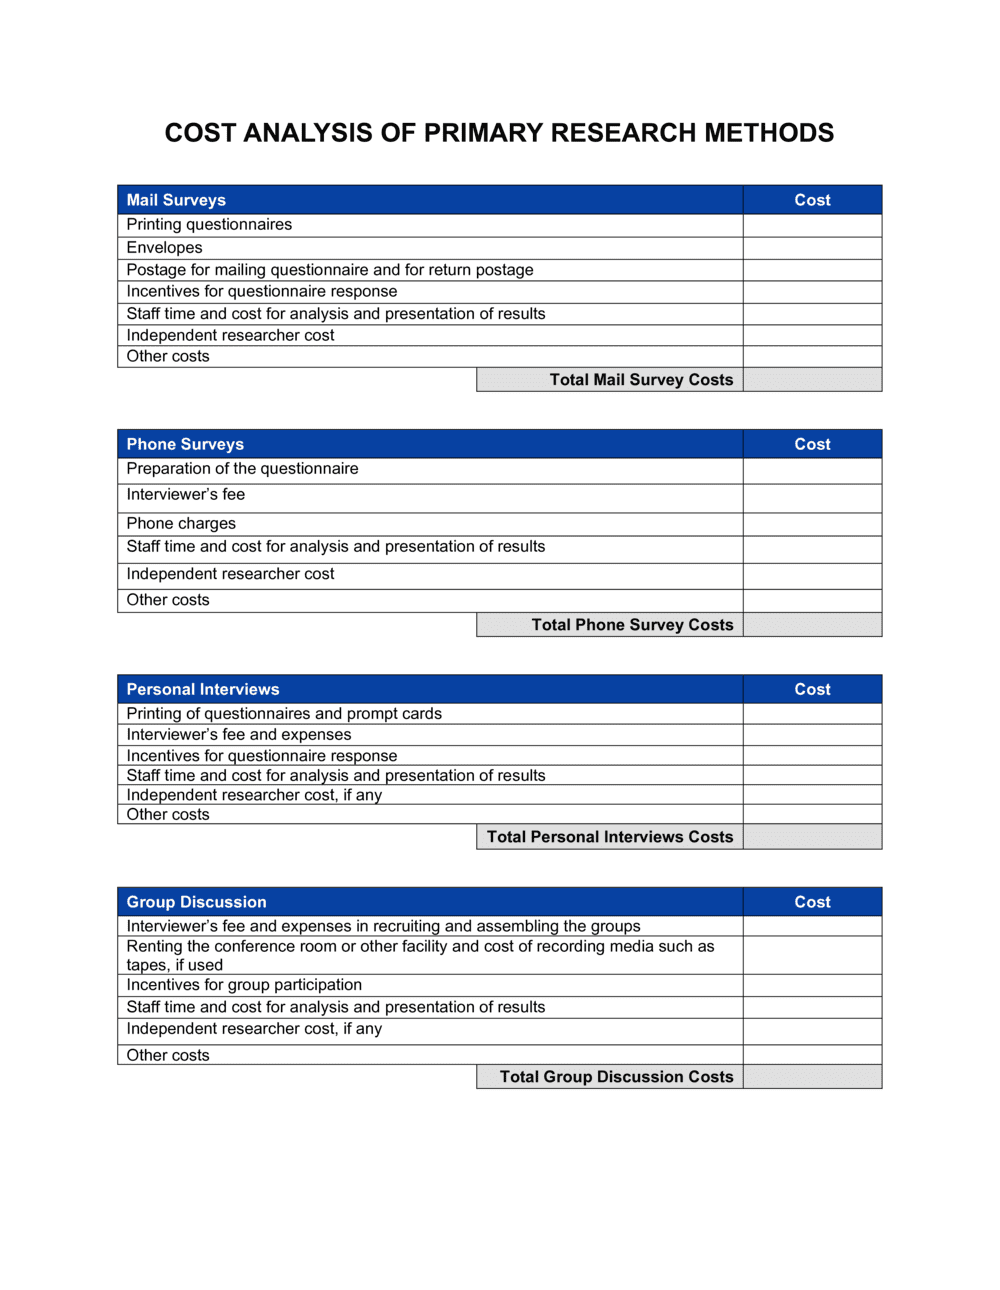 Business-in-a-Box's Cost Analysis of Market Research Methods Template